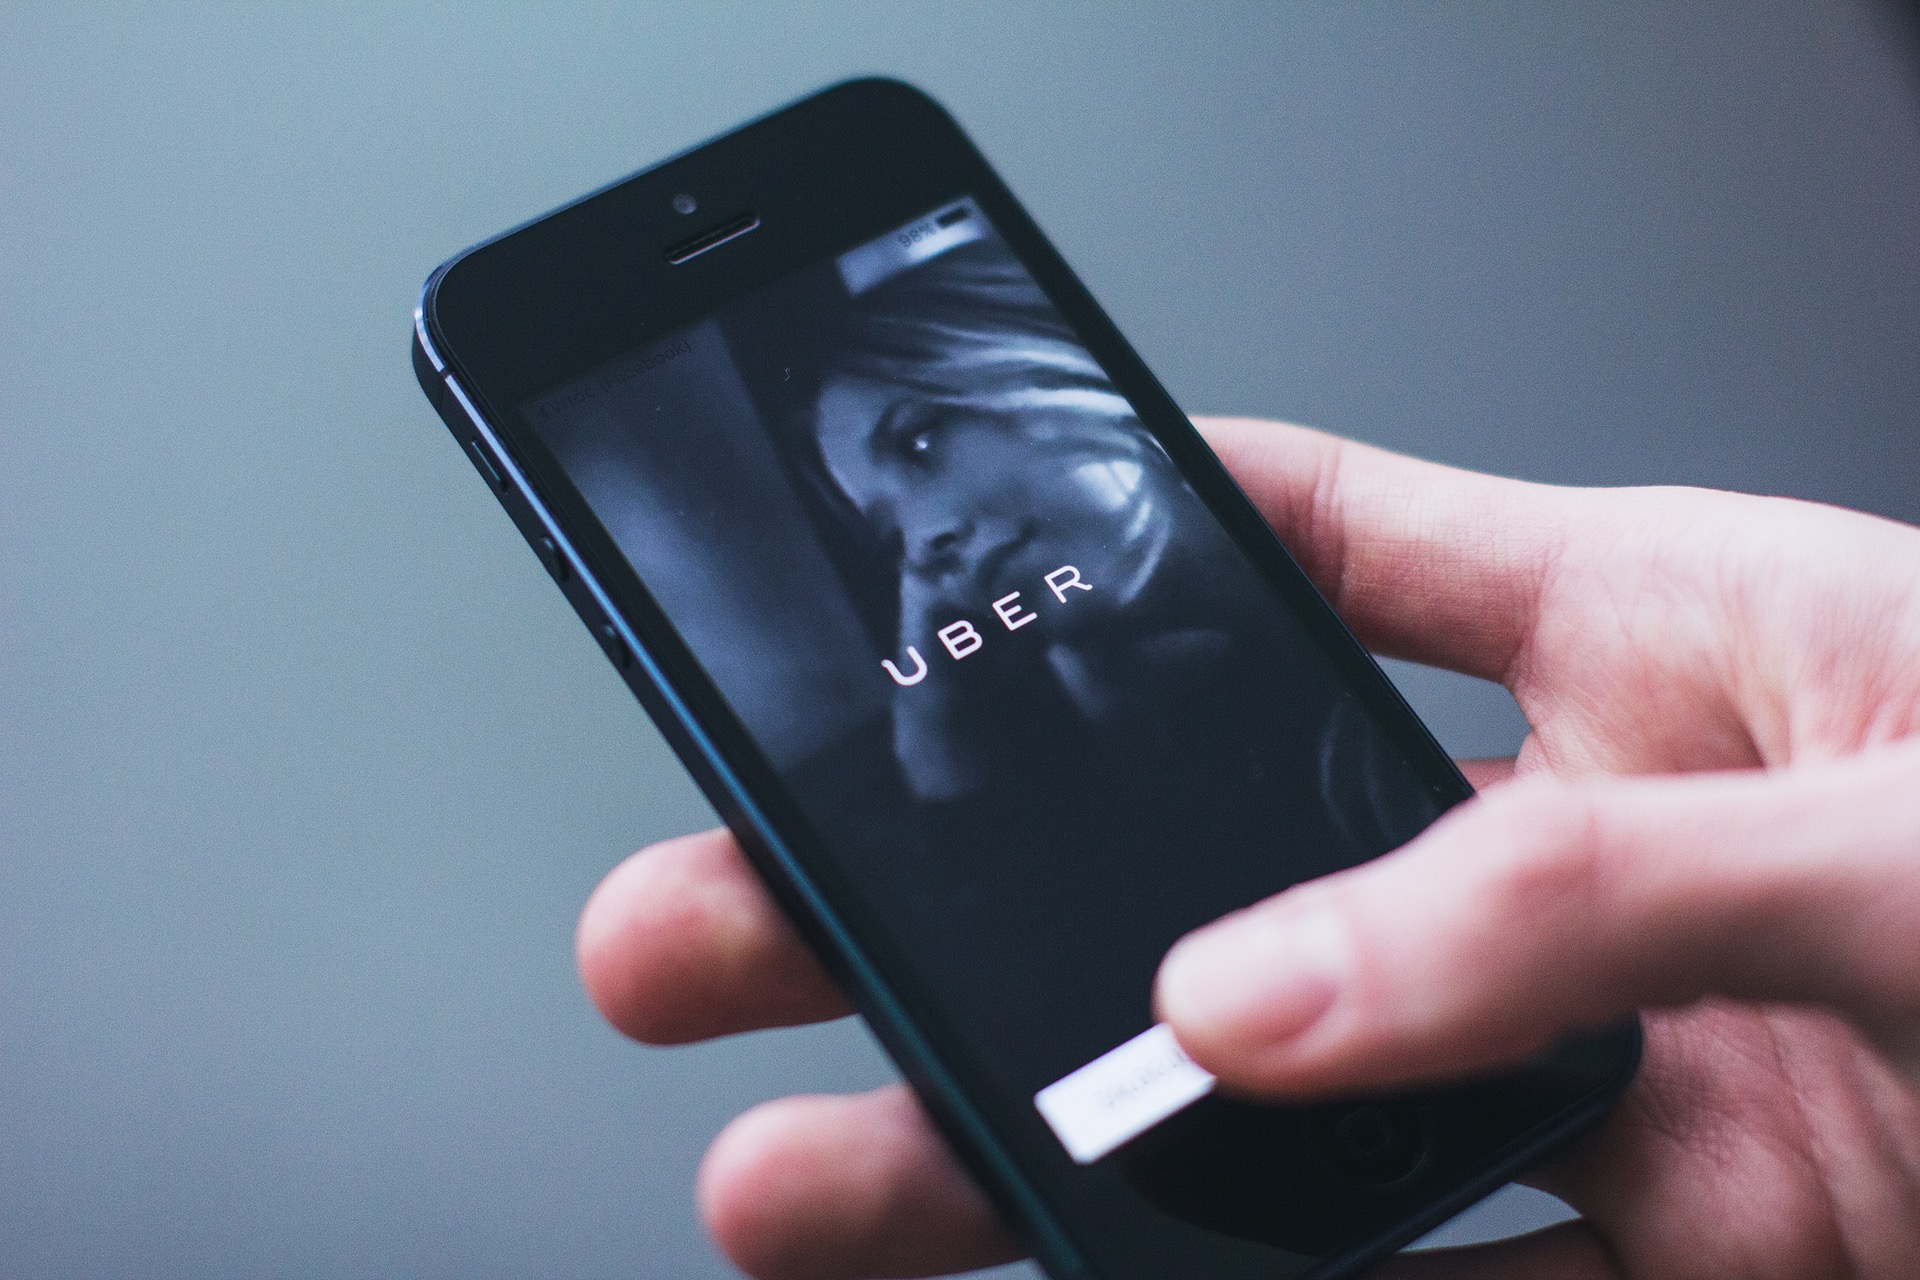 Ride Sharing Company Uber Lands in Court Again, While Lyft Needs to Step up Its Game